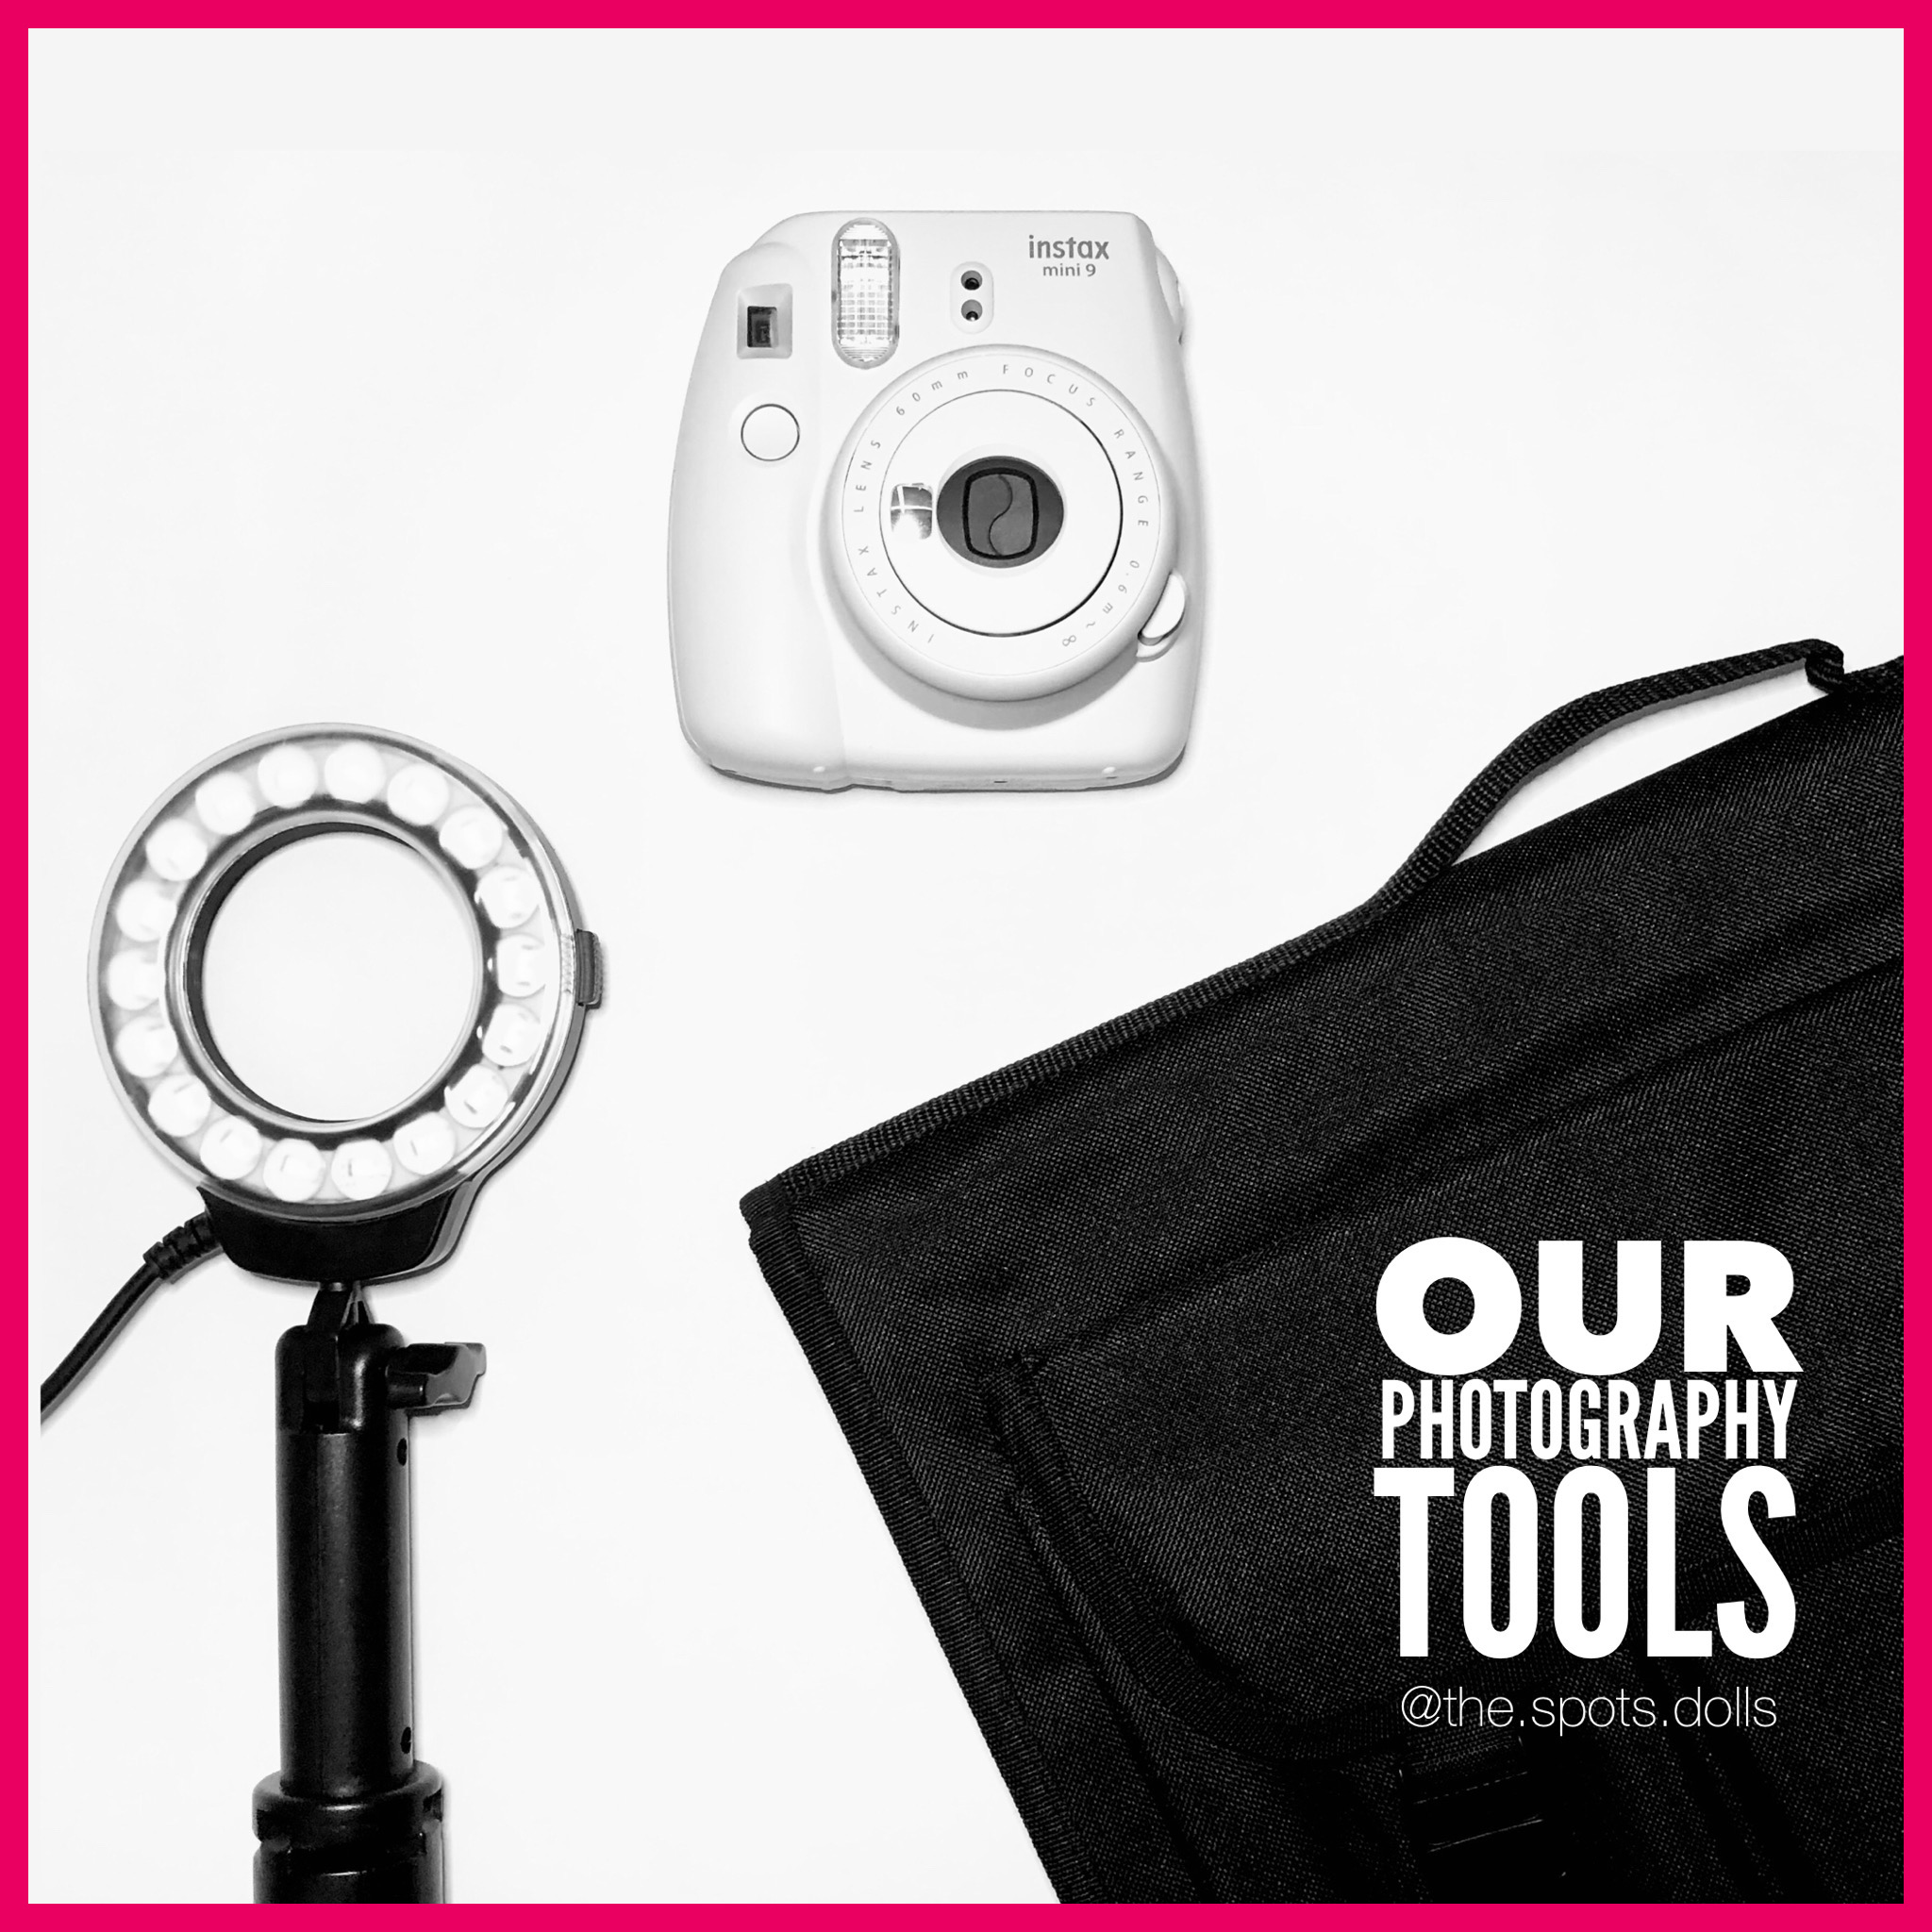 Our Photography Tools